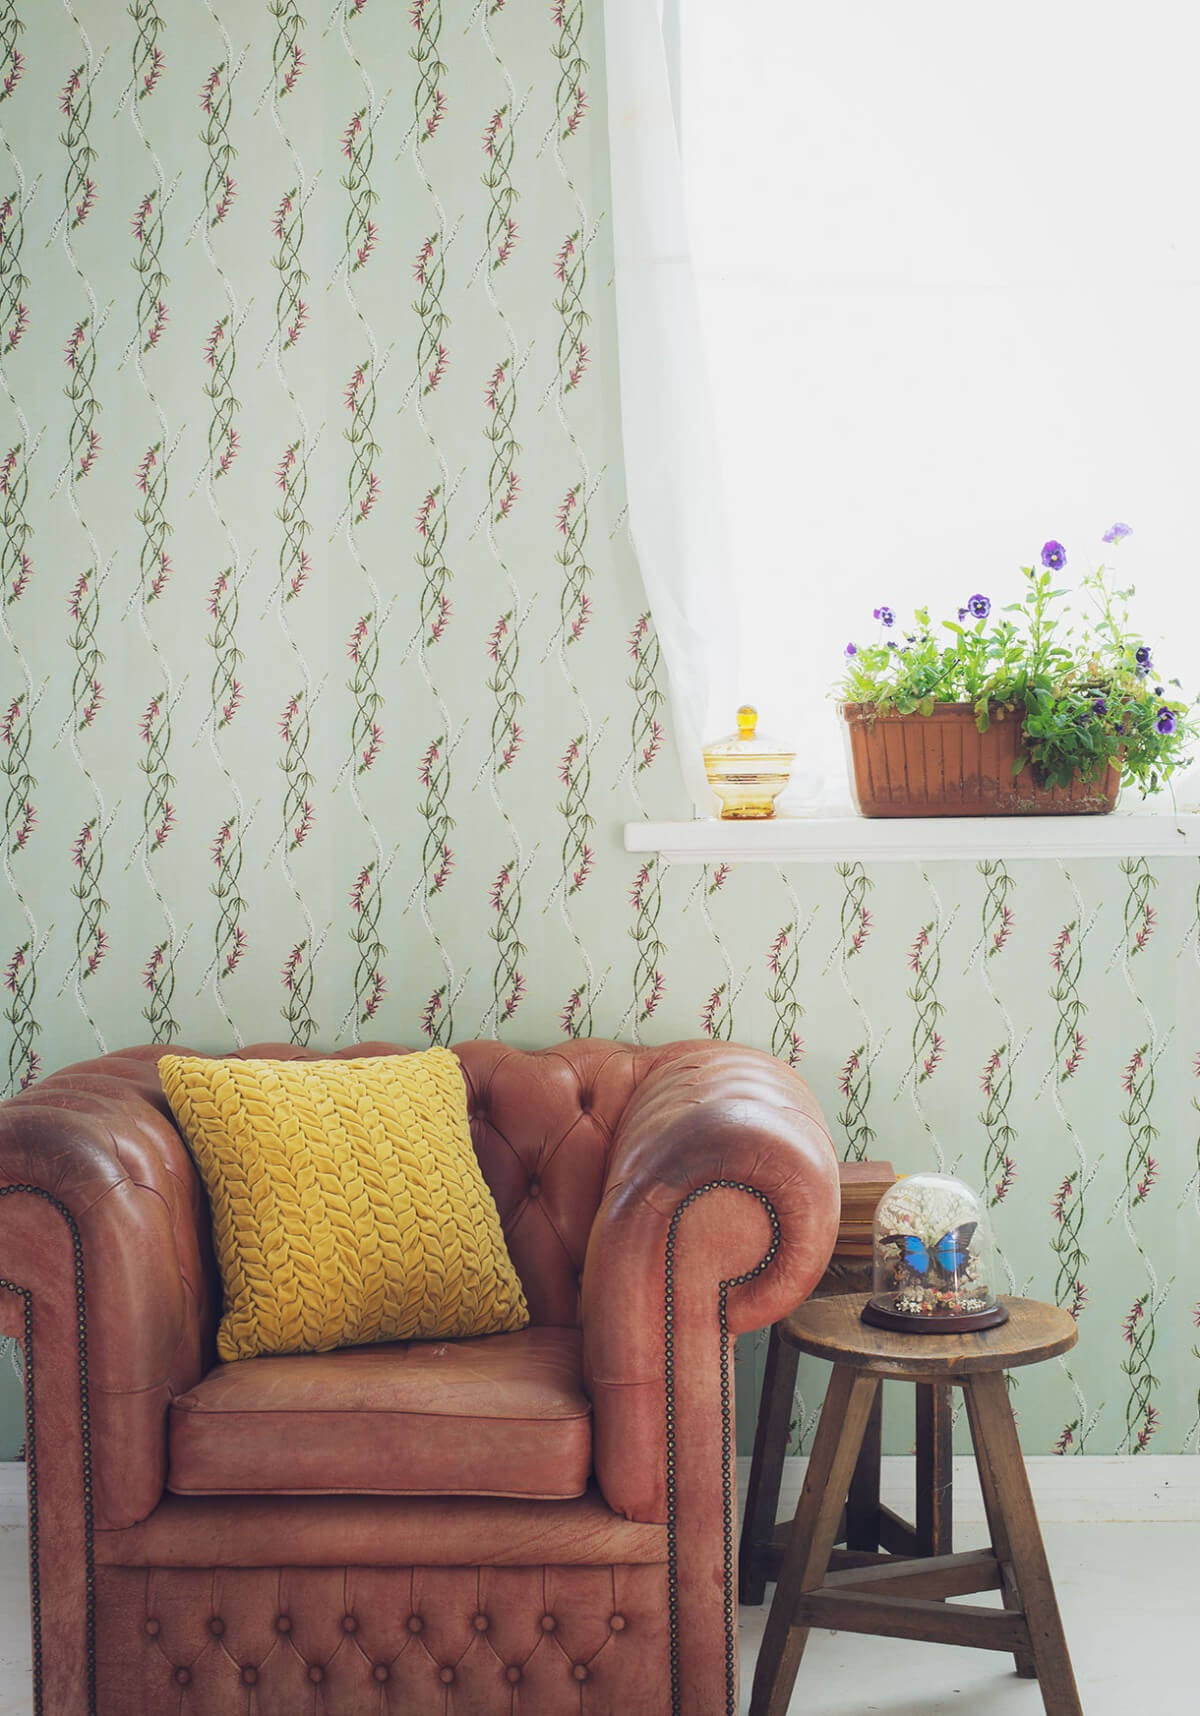 Euphemia 4 Wallpaper From The Lazybones Collection By